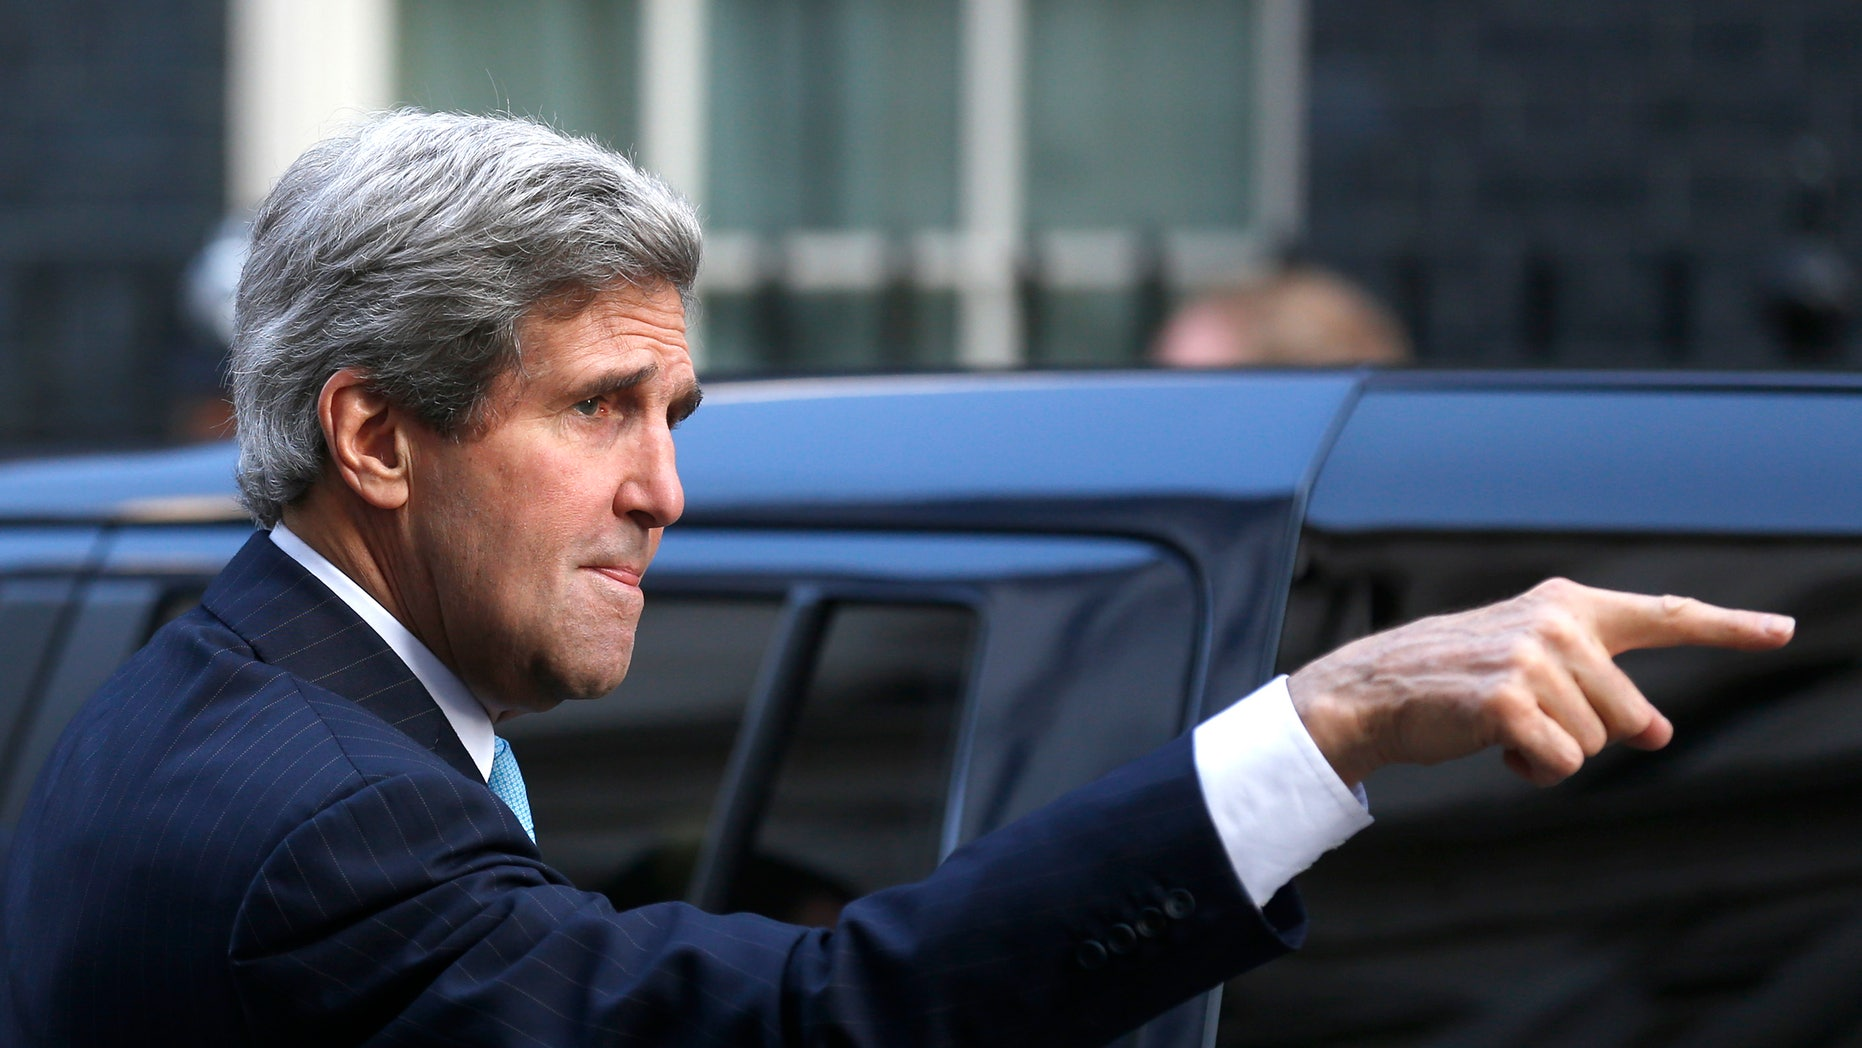 US Secretary of State John Kerry gestures as he arrives for a meeting with Britain's Prime Minister David Cameron and the Foreign Secretary William Hague at Downing street in London, Friday, March, 14, 2014. Kerry arrived in London Friday, for his last meeting with Russian Foreign Minister Sergey Lavrov before the Crimea vote. (AP Photo/Sang Tan)